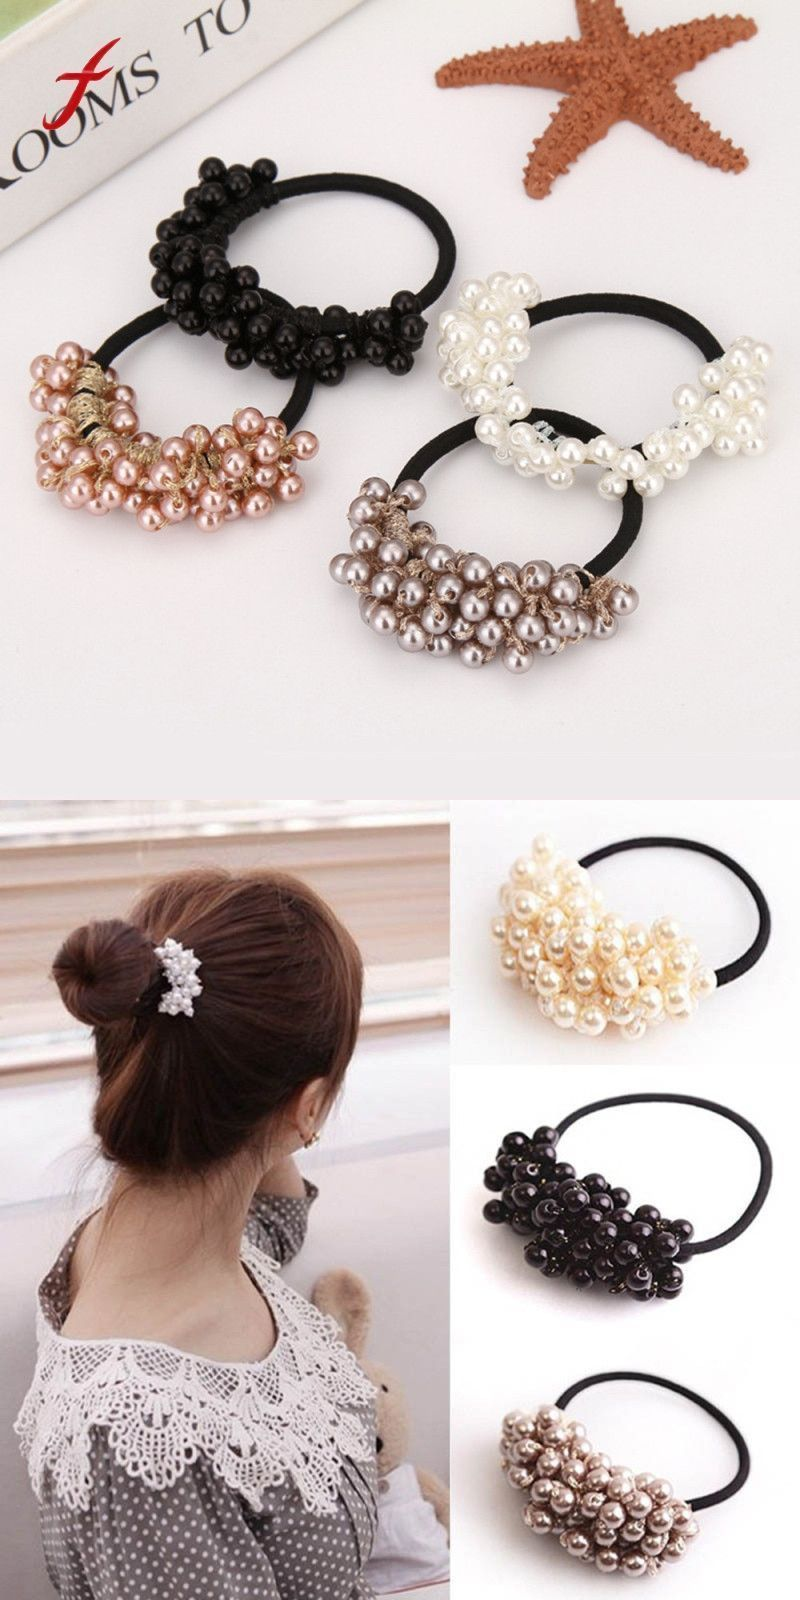 Girl's Accessories Lovely Luxury Pearls Hairpins Hair Ornaments Trendy Hair Clip Shiny Rhinestone Crab Hair Claws For Women Girl Accessories Headwear Apparel Accessories